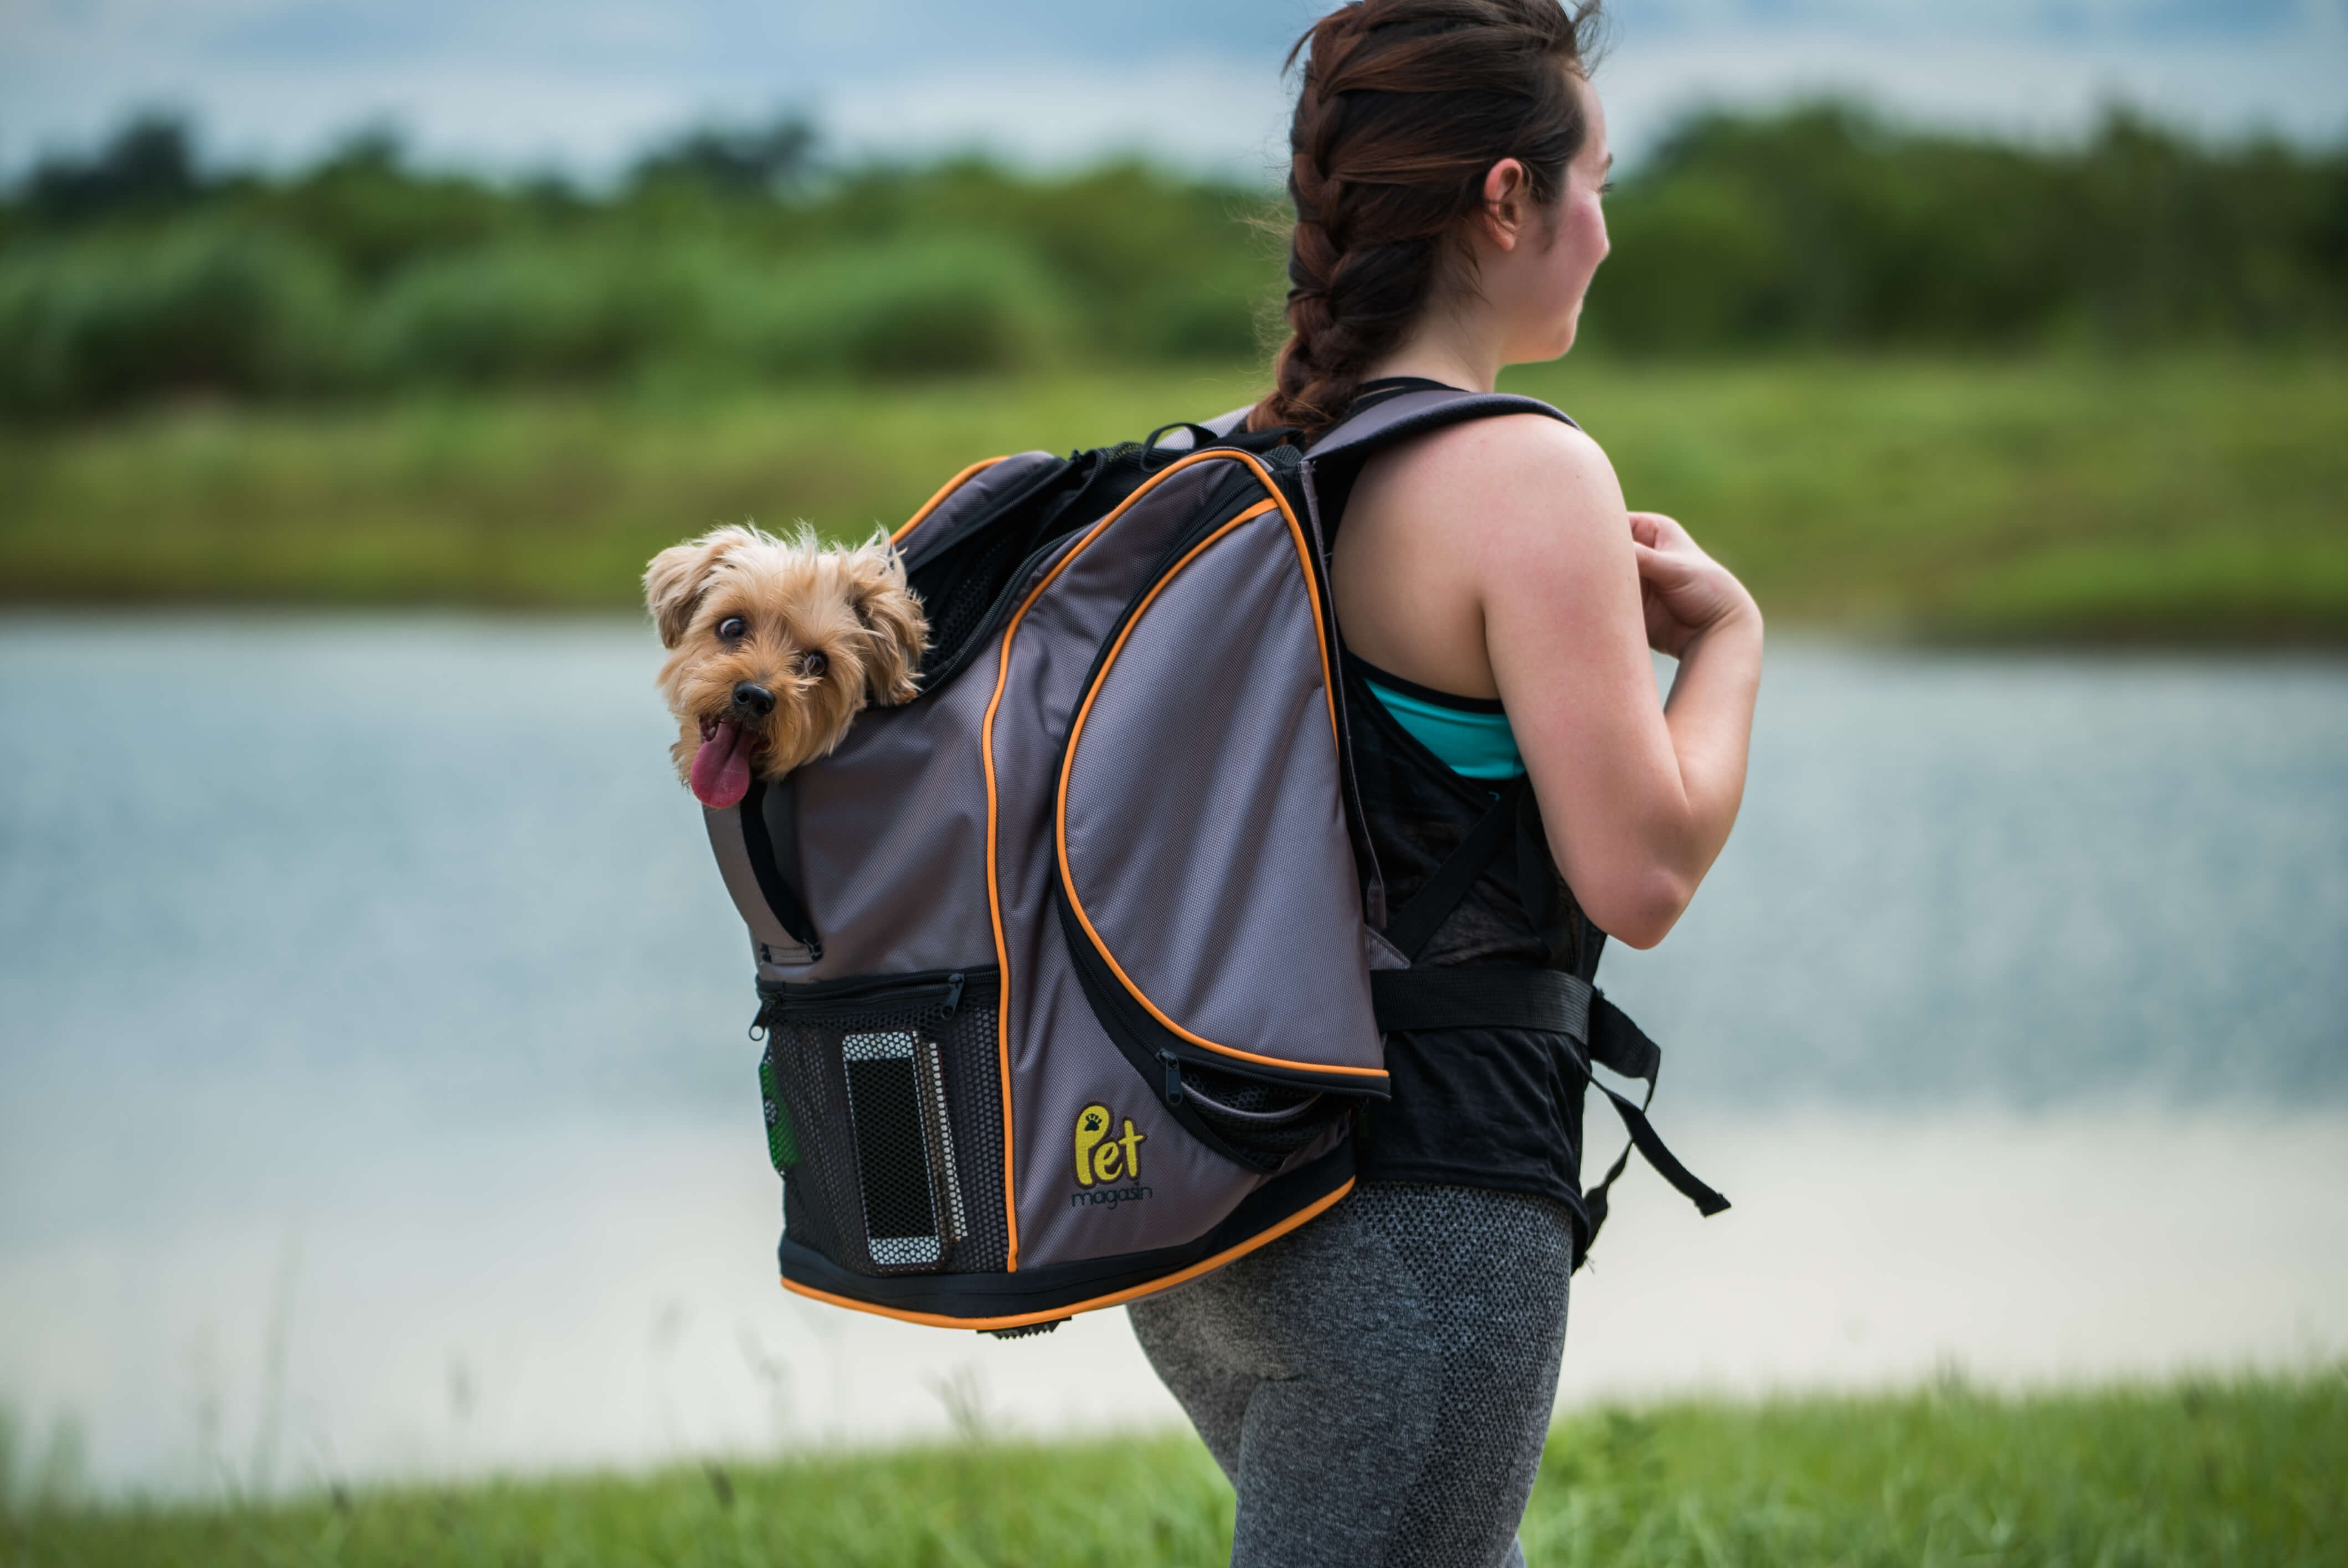 Lambo backpack worn on back dog carrier younfolded blog